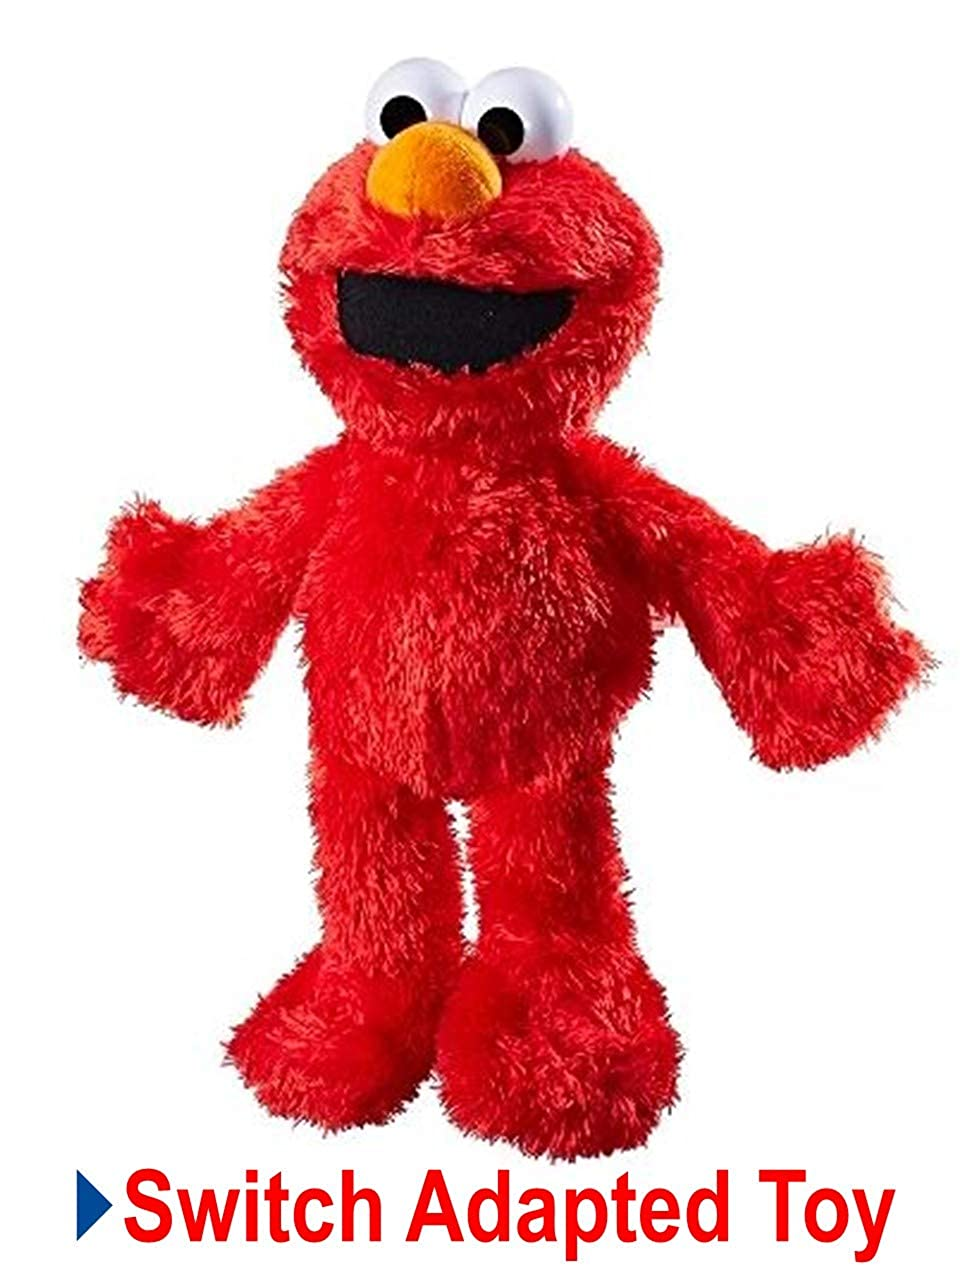 Switch Adapted Toy Tickle Me Elmo | Adaptive Toys | Special Needs Switch Toys | Switch Toys